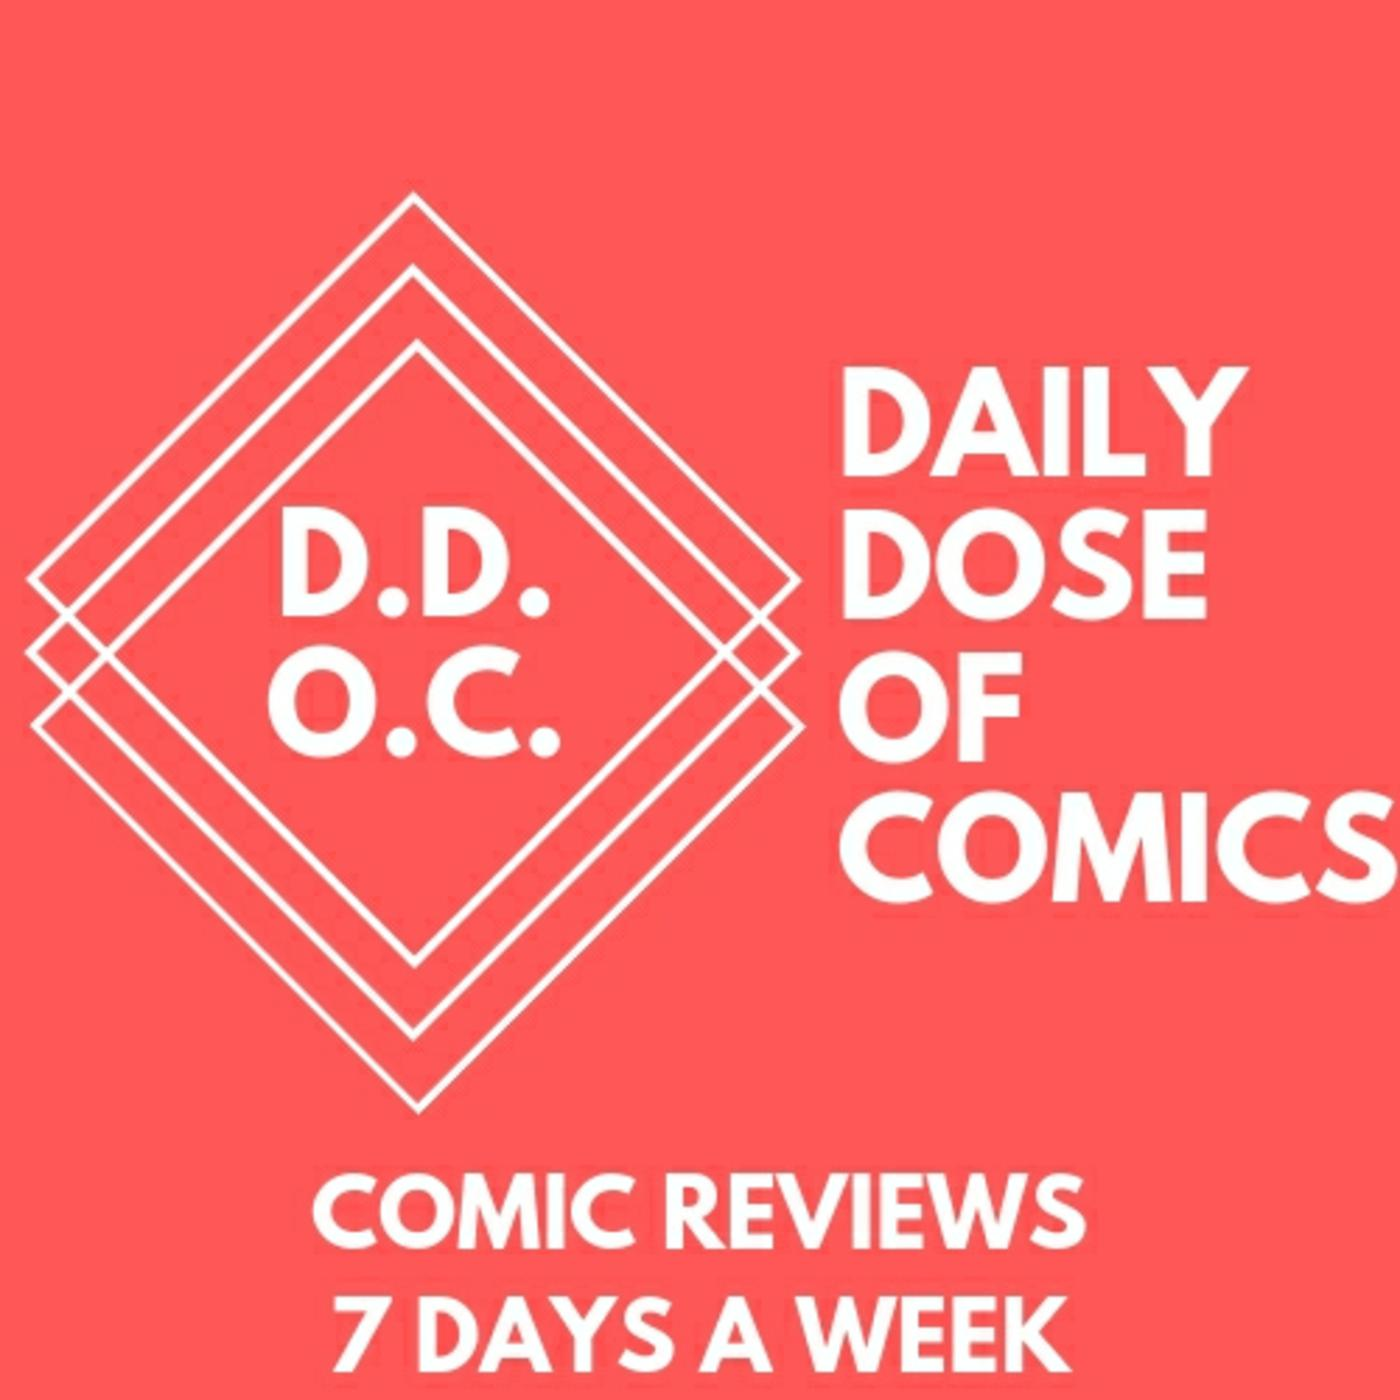 DAILY DOSE OF COMICS show image